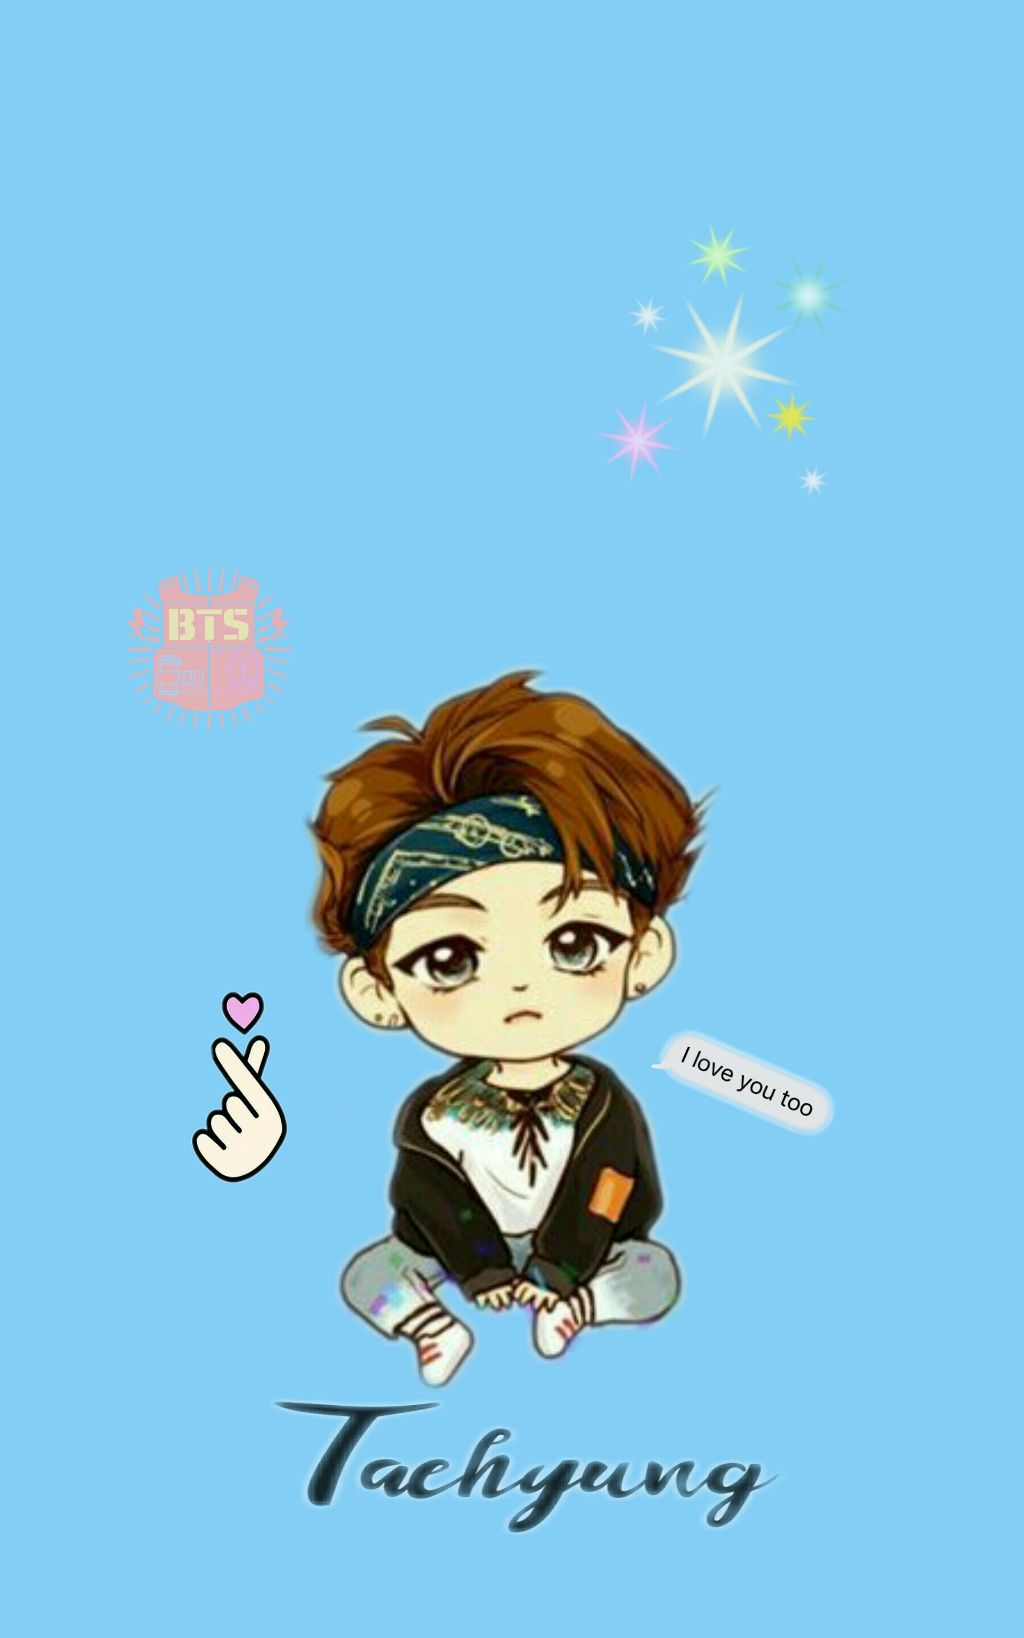 V chibi for phone wallpapera Image by Chen Ailynn